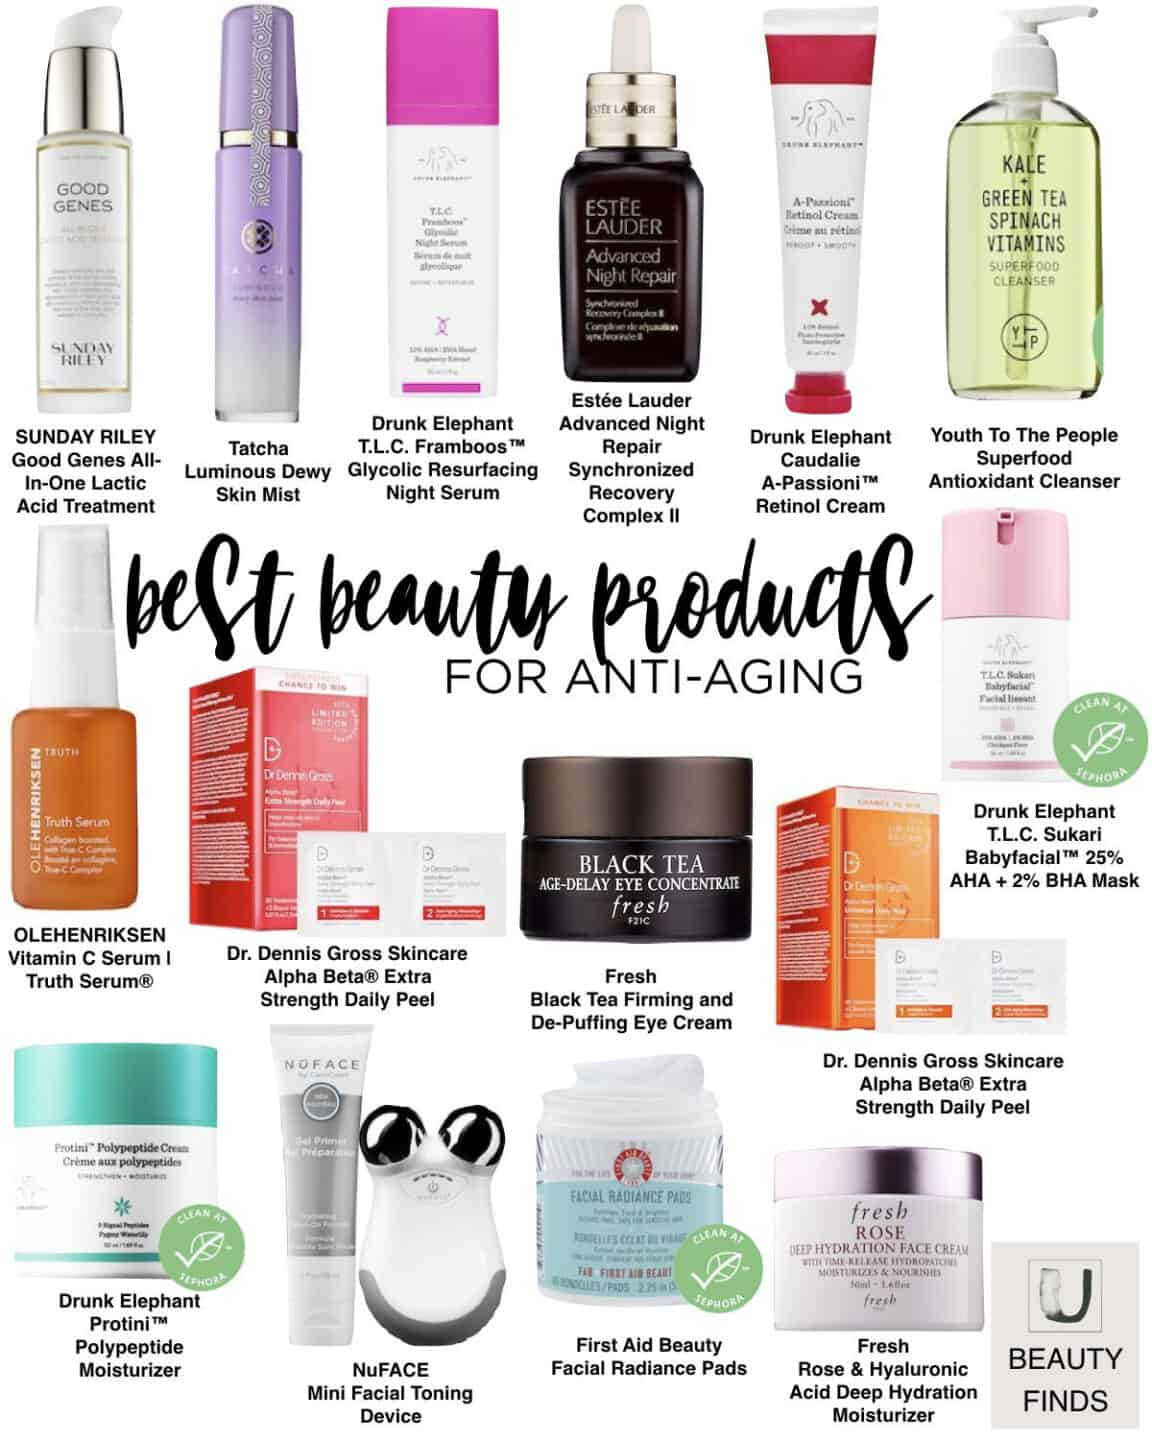 Best Skincare Products for Anti-Aging